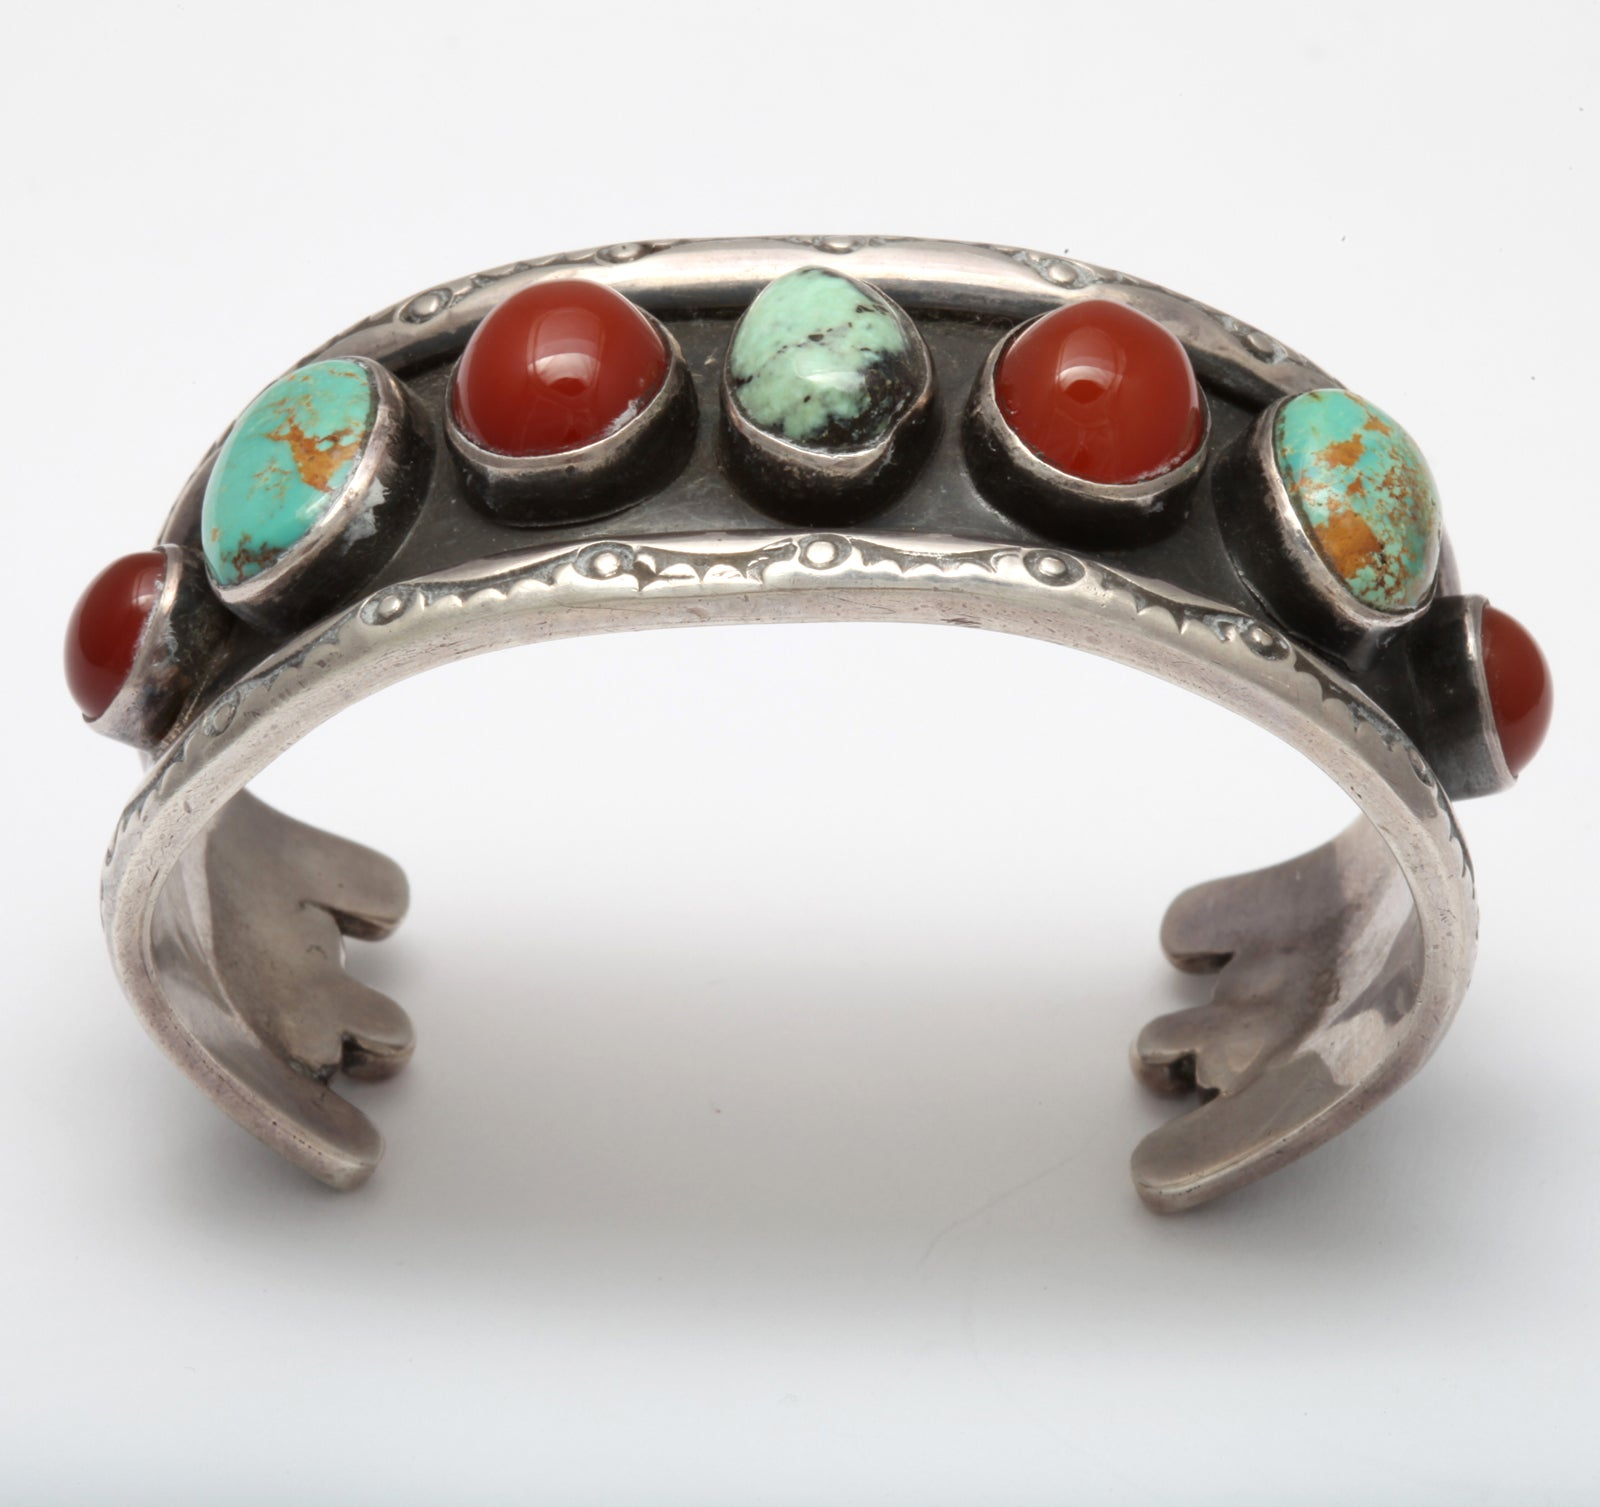 Old Navajo Cuff of Matrix Turquoise and Carnelian In Excellent Condition For Sale In Hastings on Hudson, NY